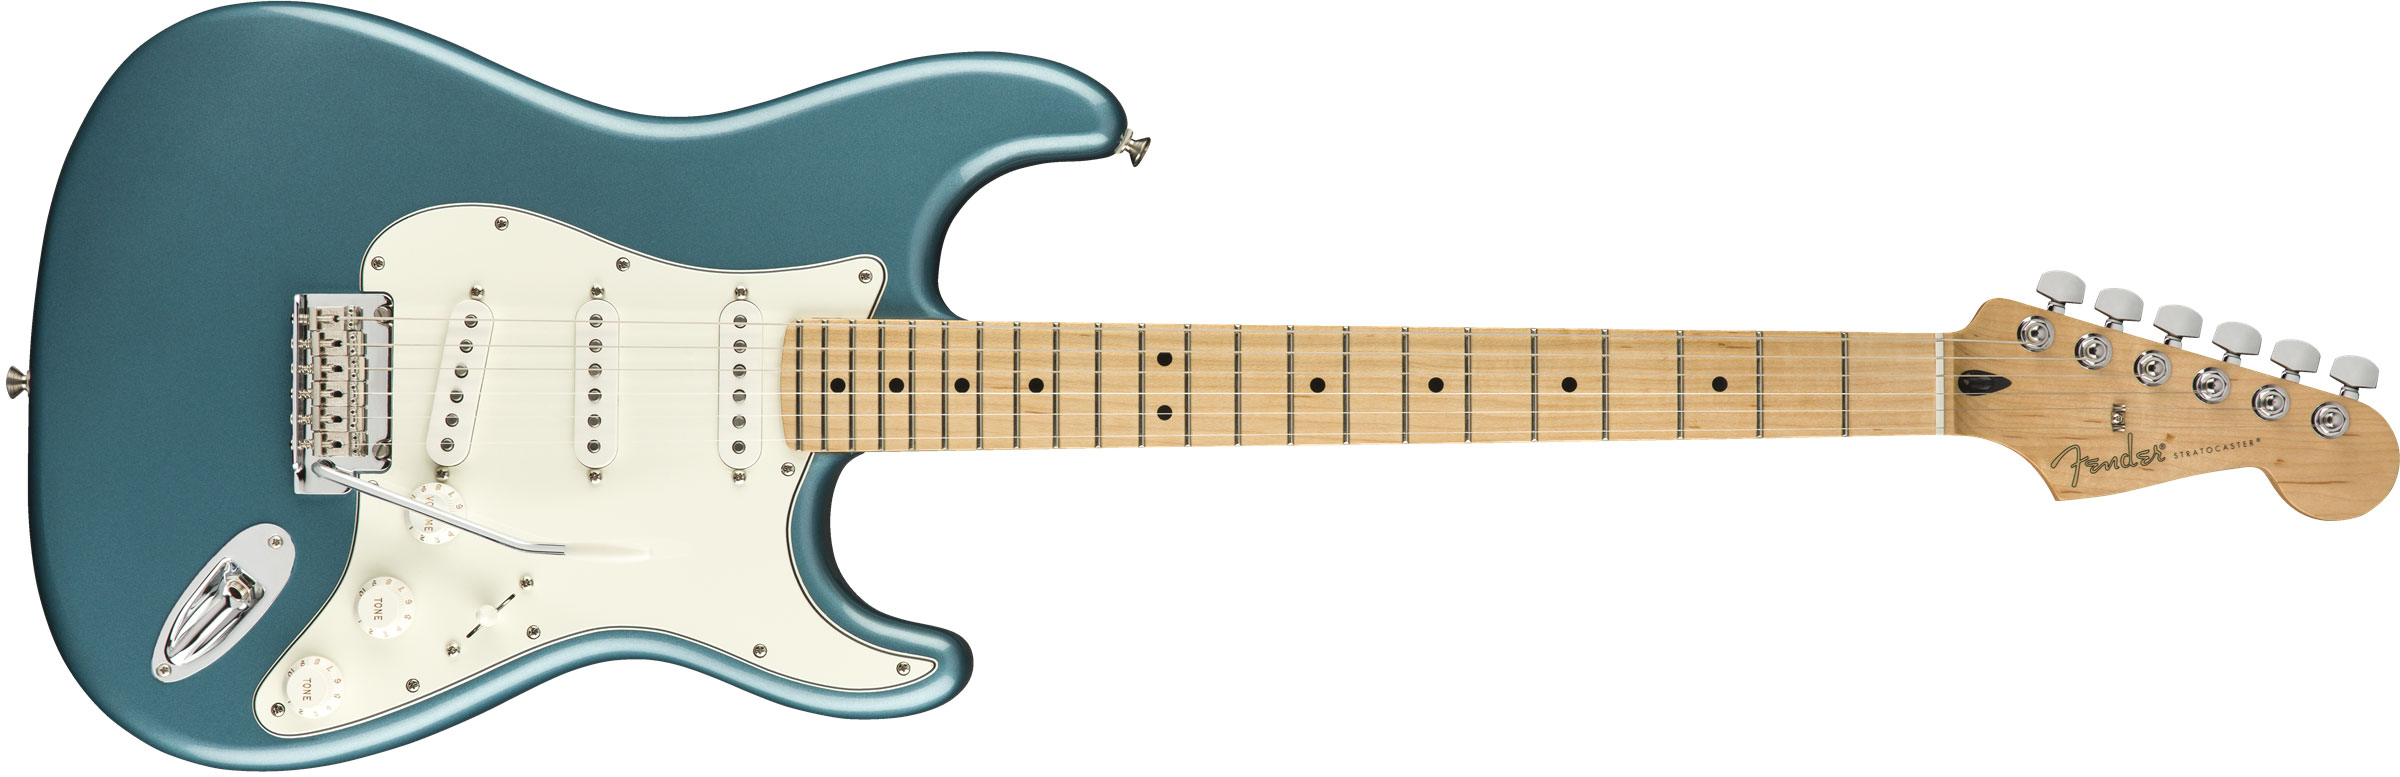 GUITARRA FENDER PLAYER STRATOCASTER MN 014-4502-513 TIDEPOOL